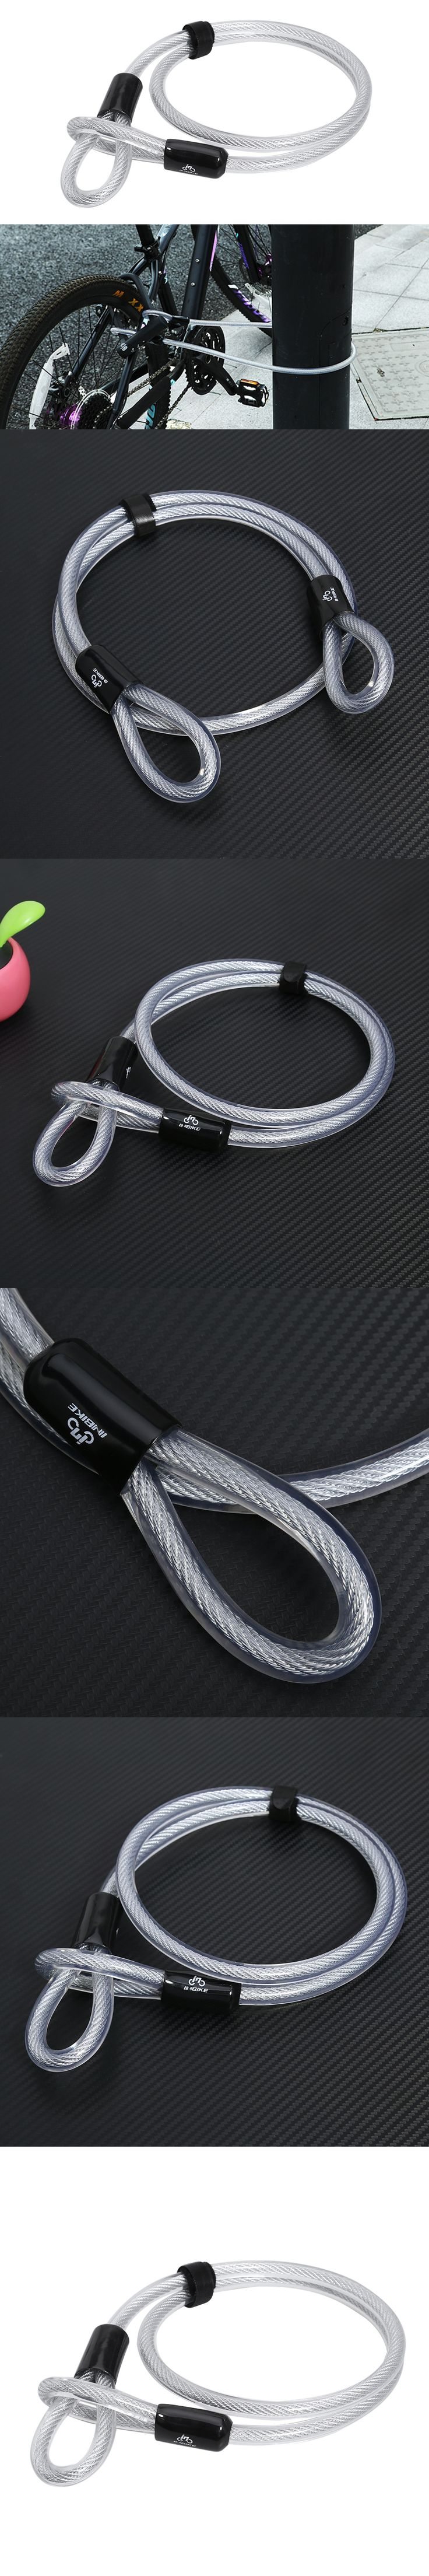 Cable Lock 1.2m/3.94ft Anti Theft Bike Lock Thickened Extende Steel Safe Bicycle PVC Security MTB Mountain Road Bicycle Lock